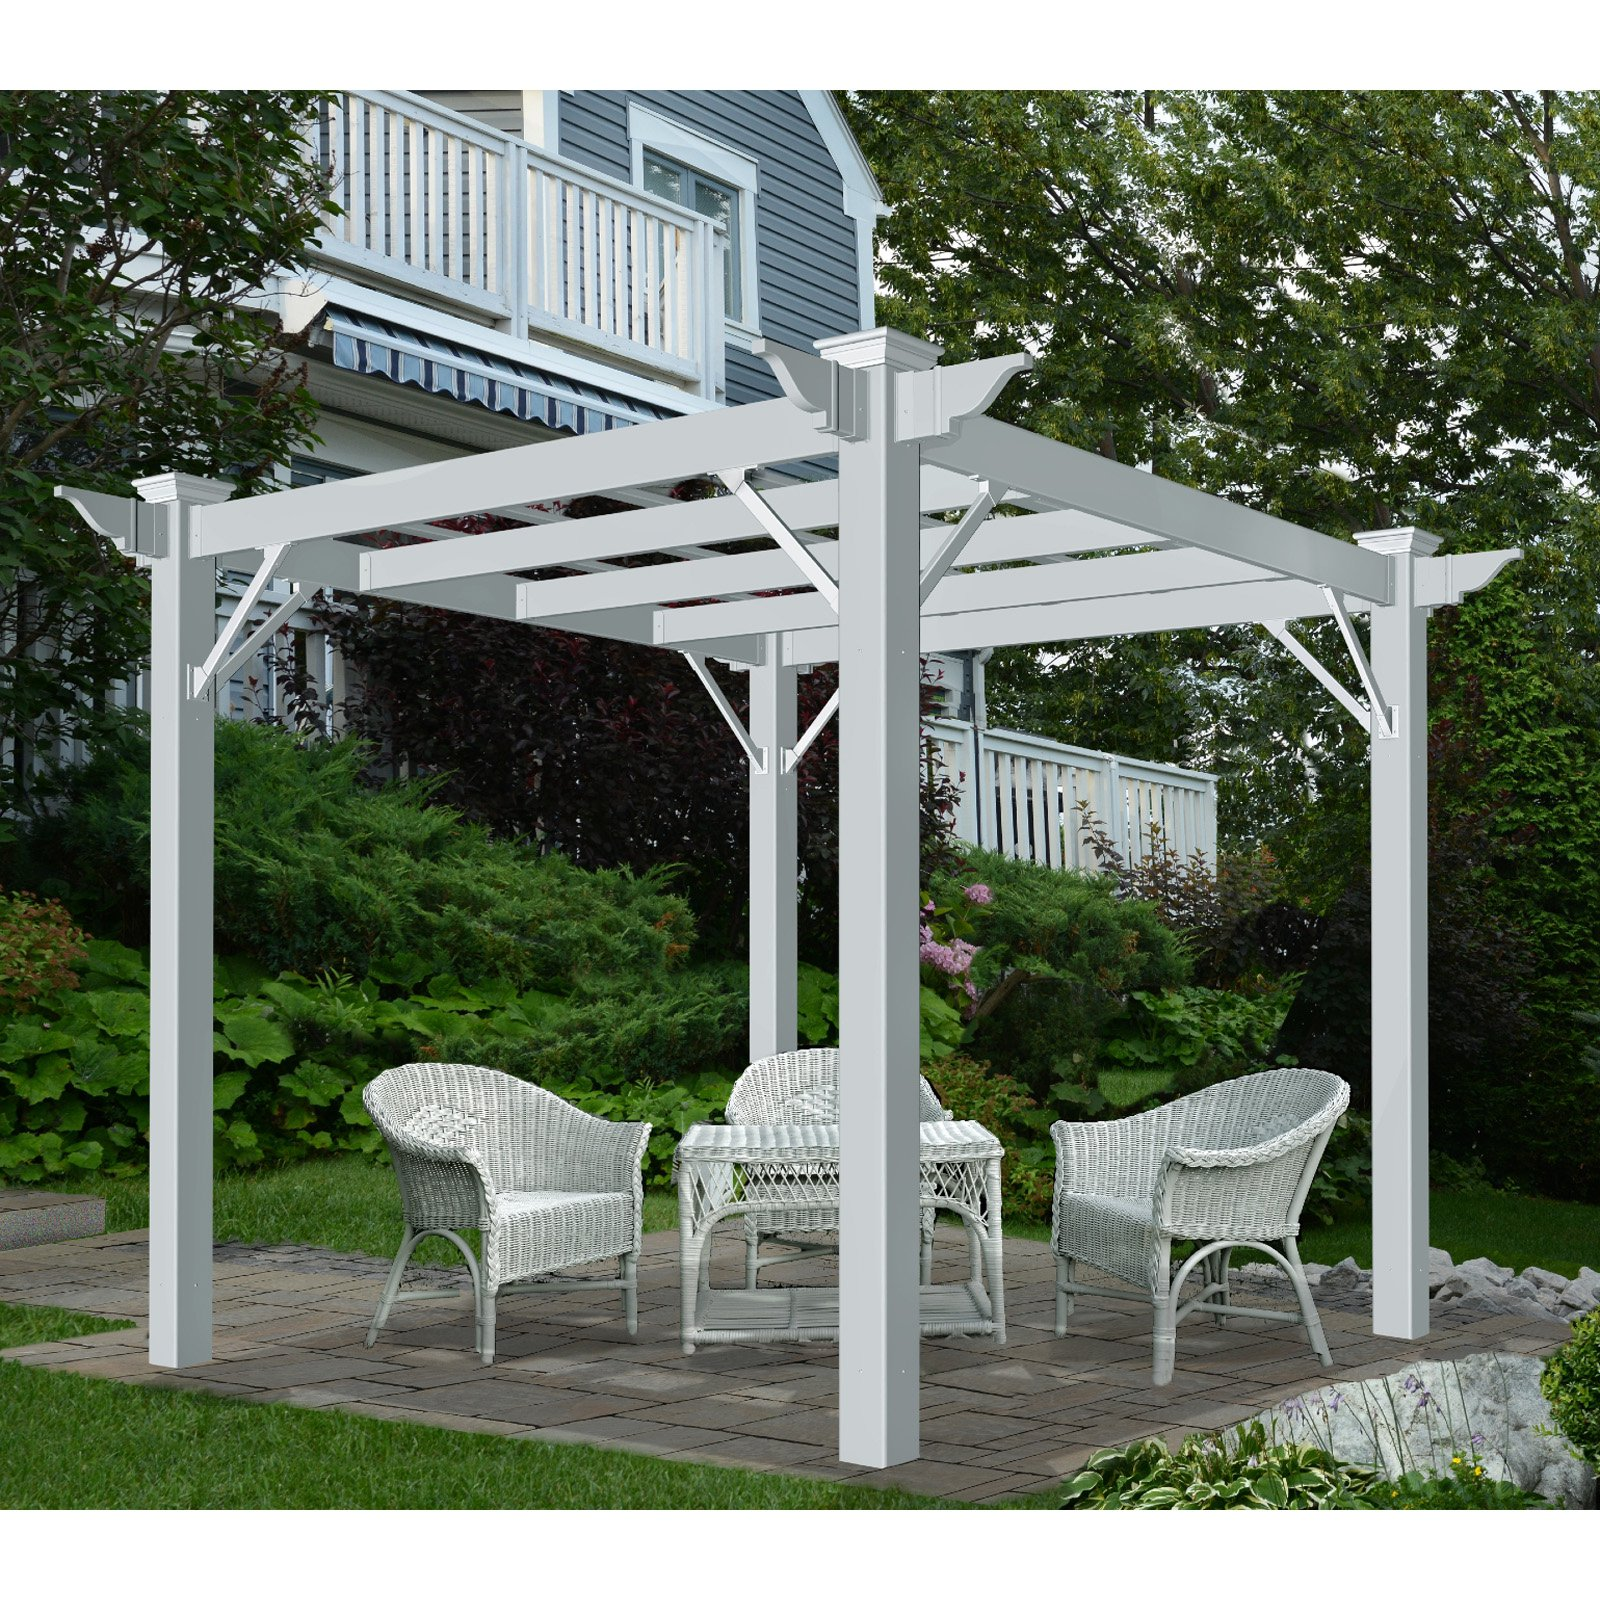 New England Arbors Lenox 8.5 x 8.5 Slide Lock Pergola by New England Arbors